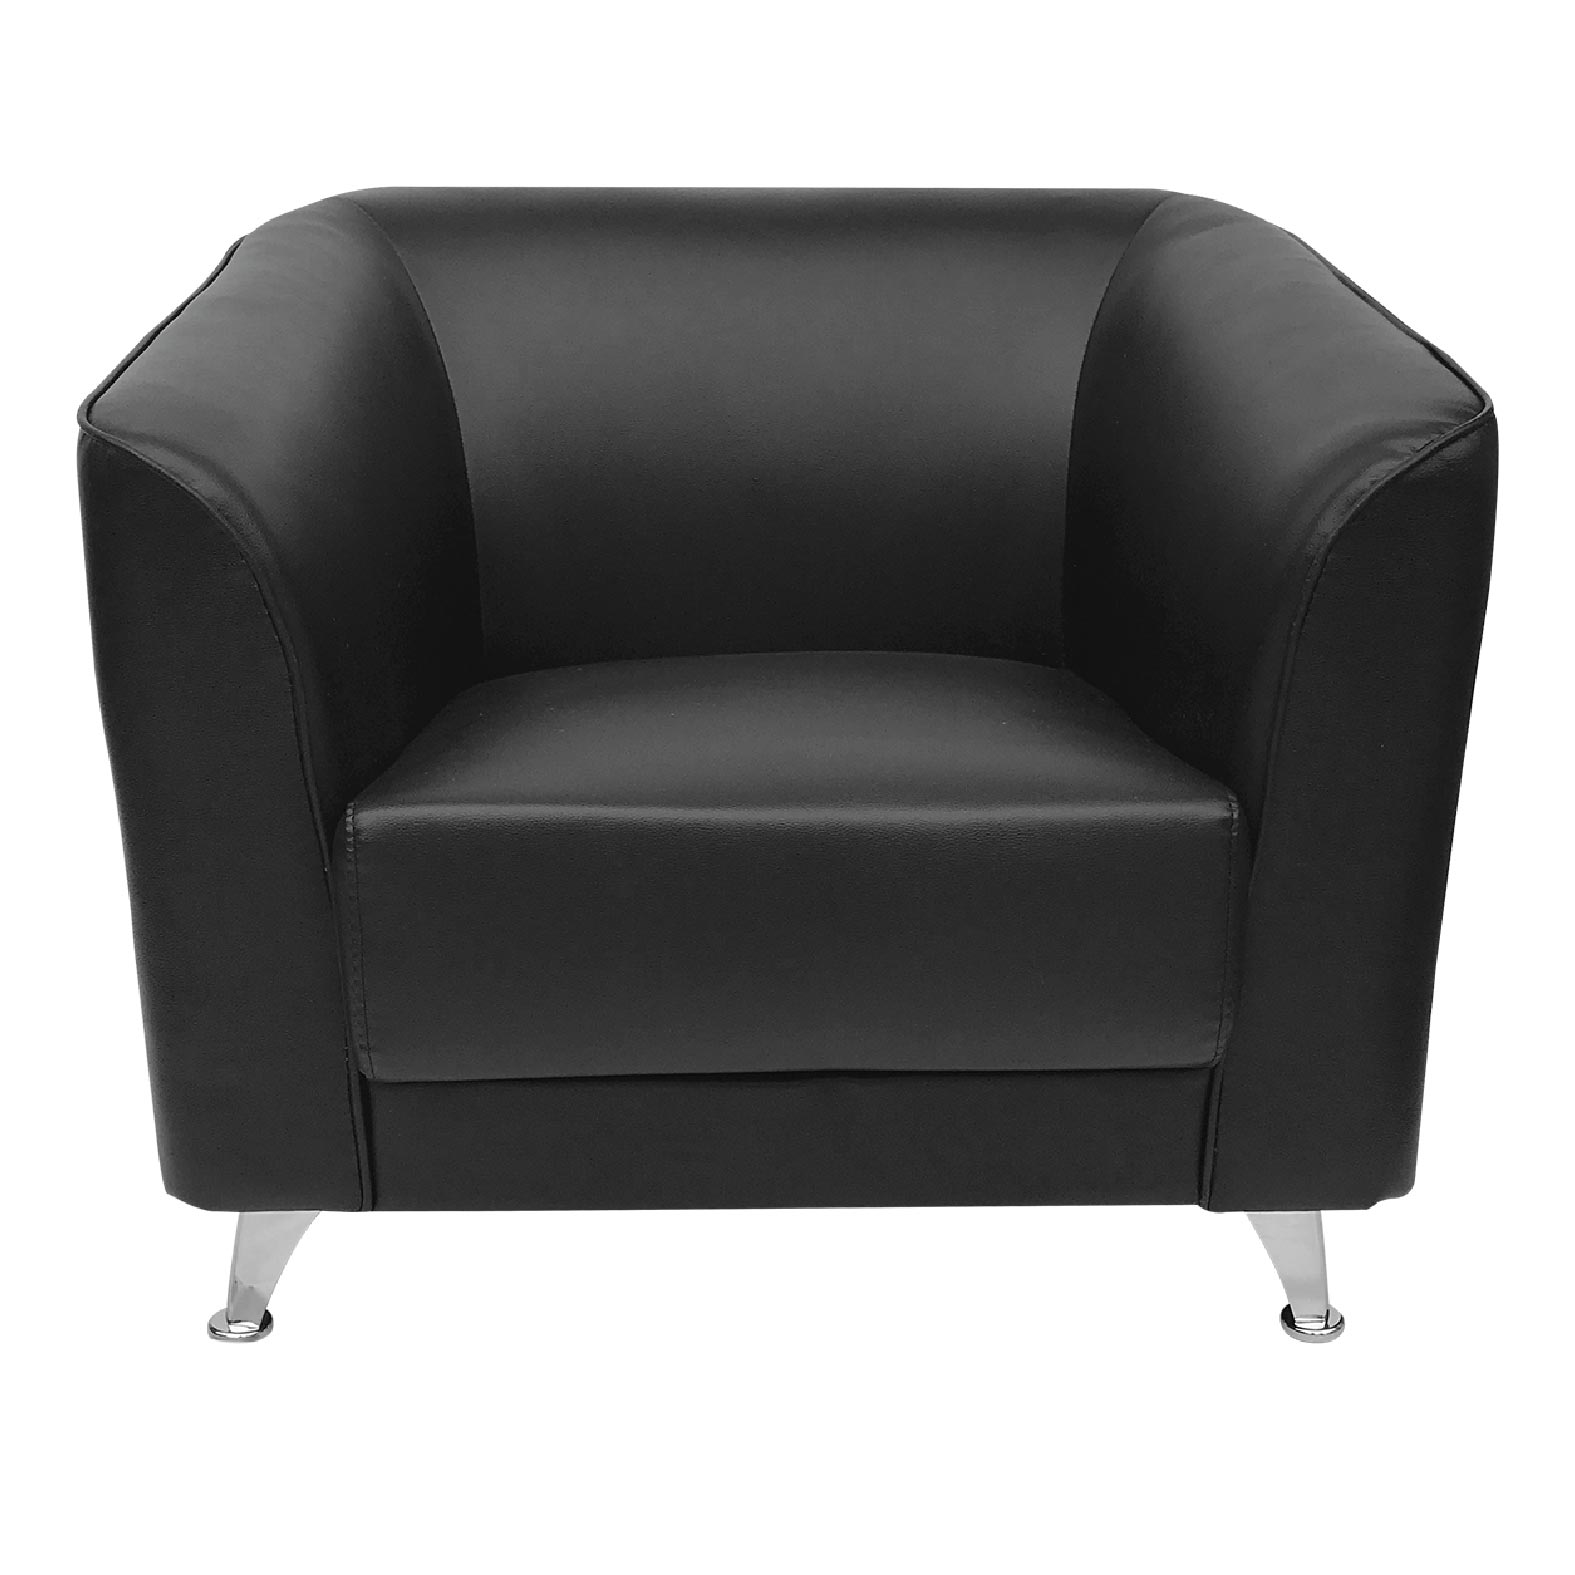 Charm Sofa Solo Black